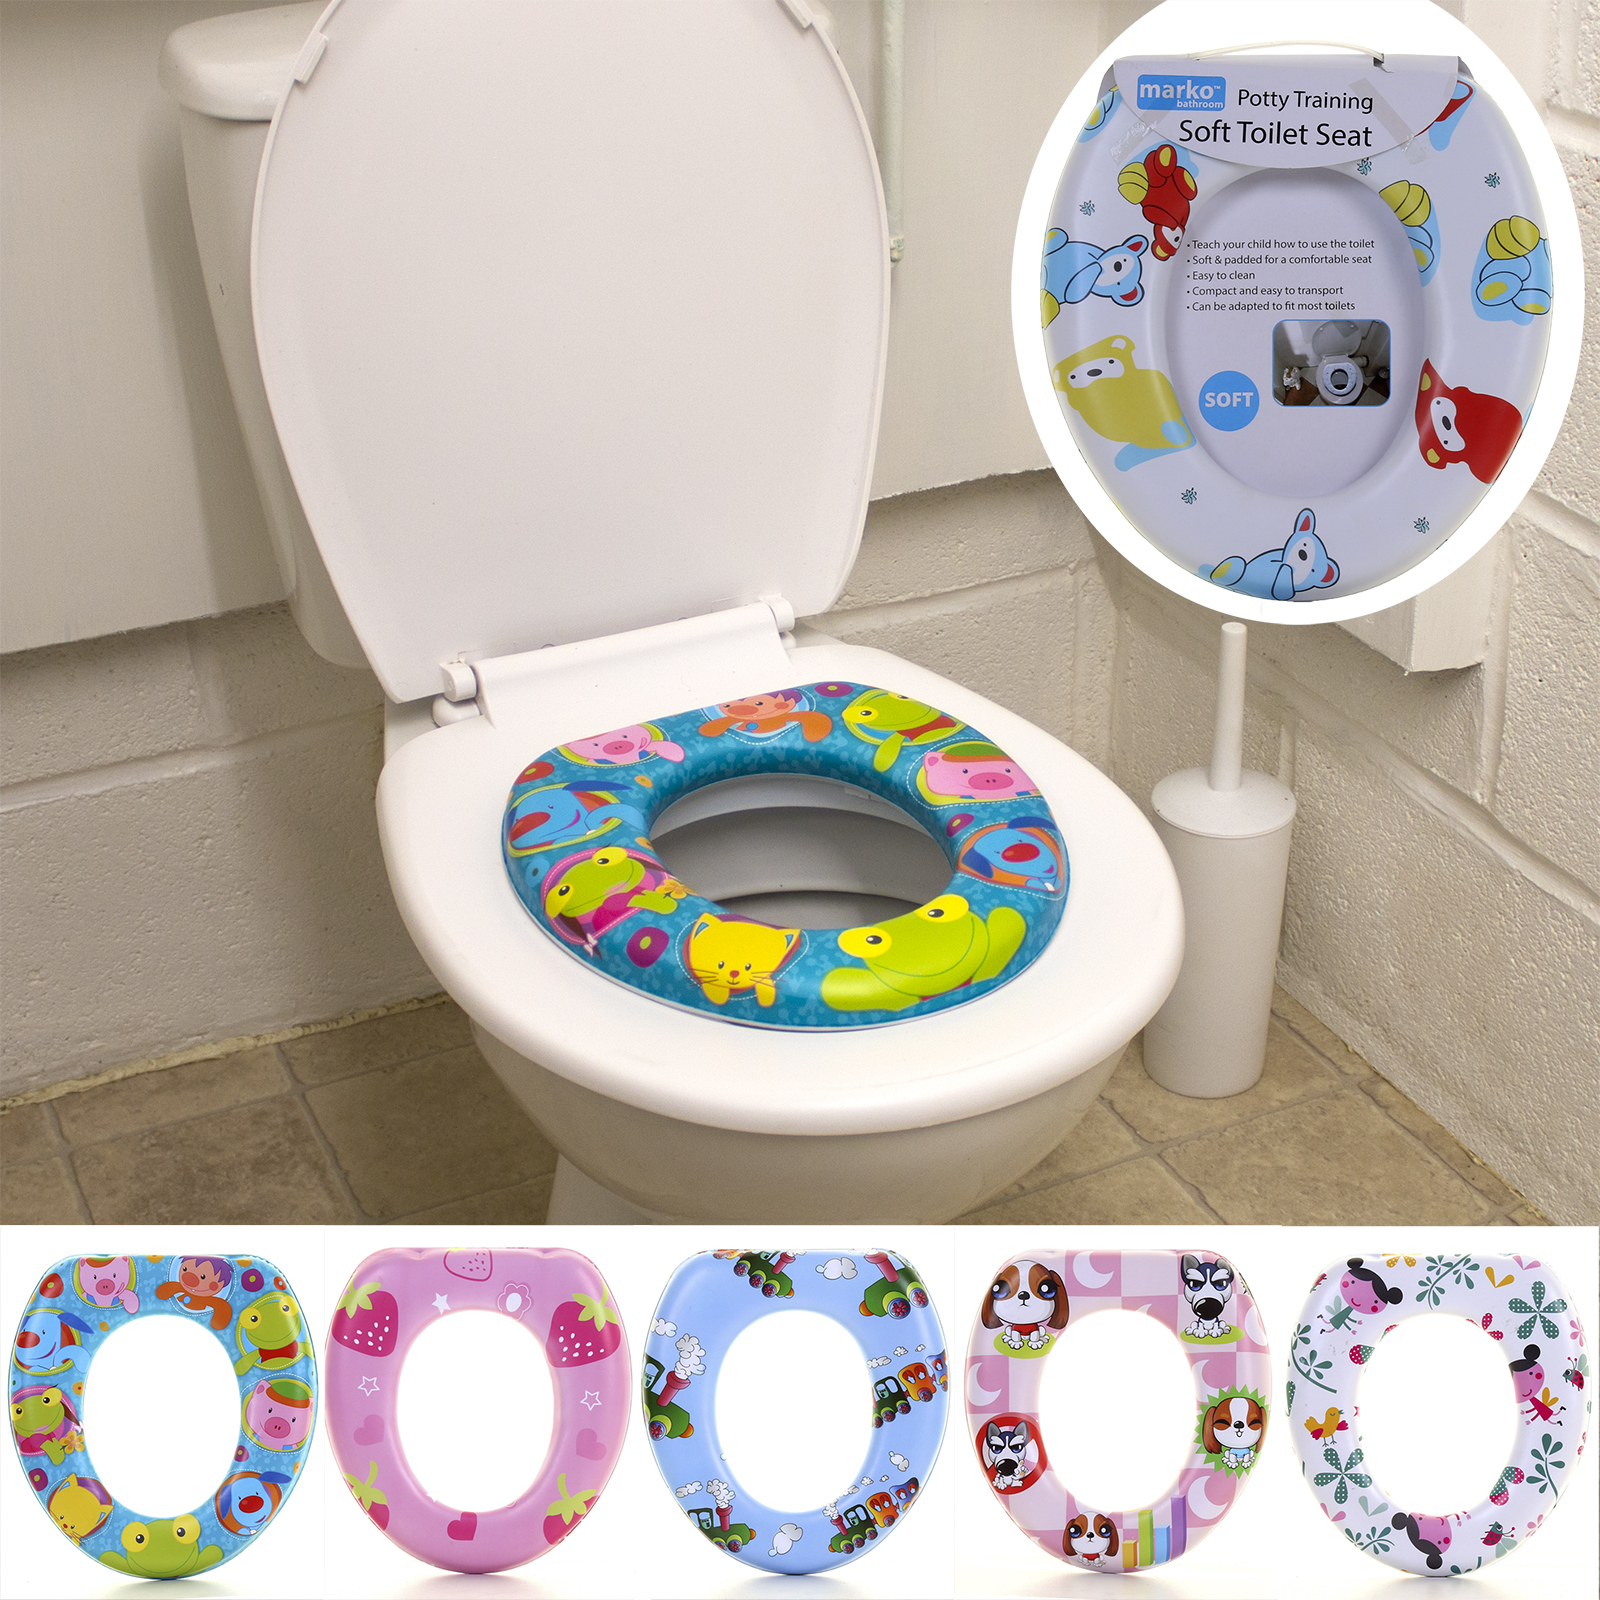 Potty Training Toilet Seat Thick Comfortable Foam Padded Baby